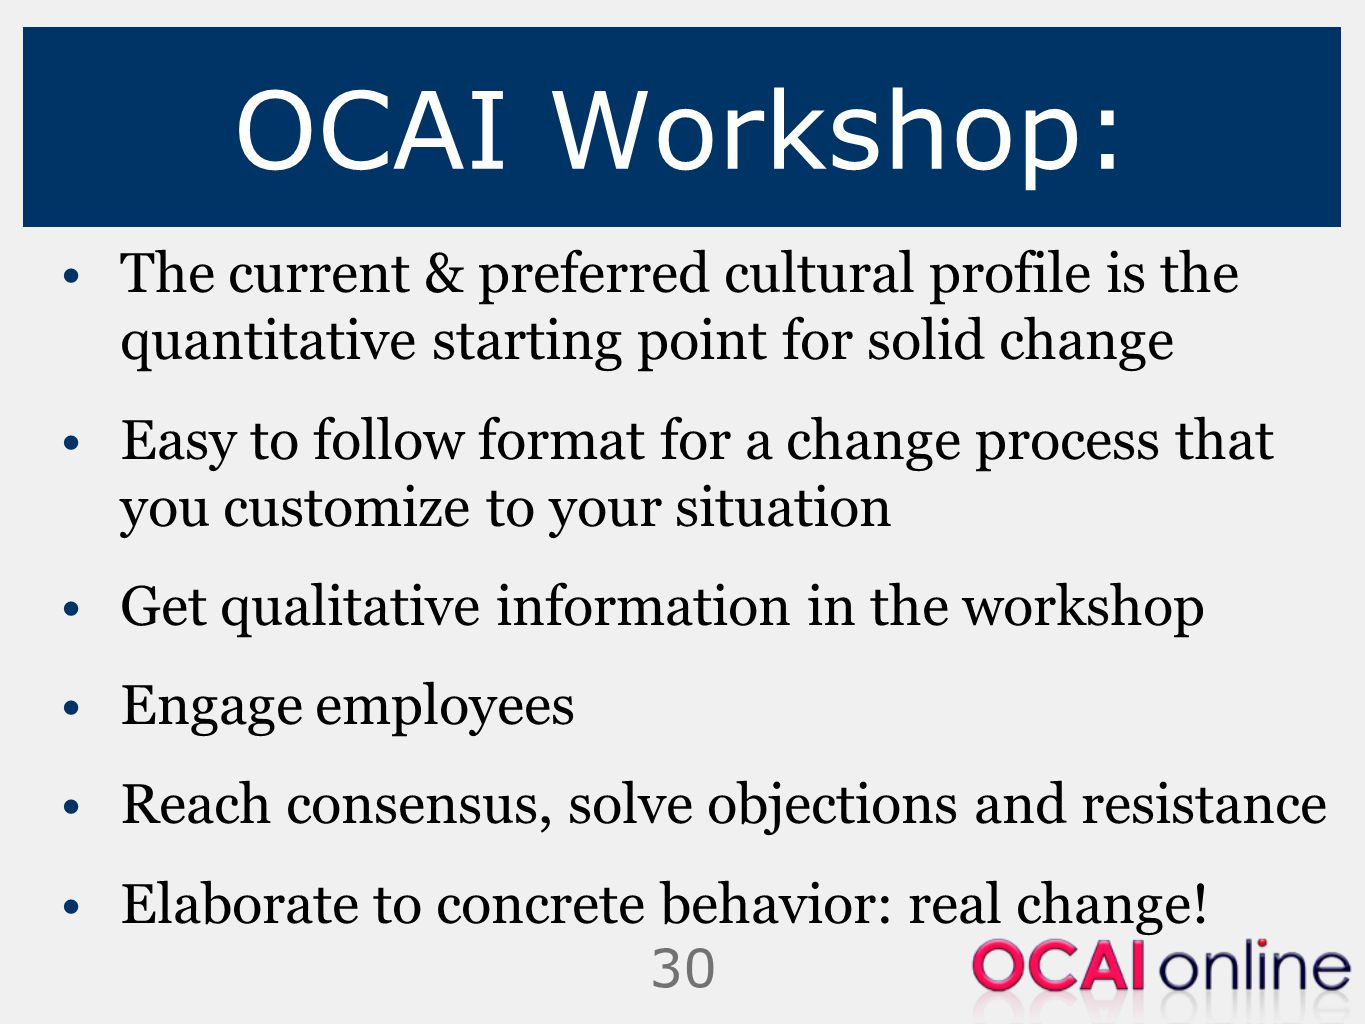 OCAI Workshop: The current & preferred cultural profile is the quantitative starting point for solid change.